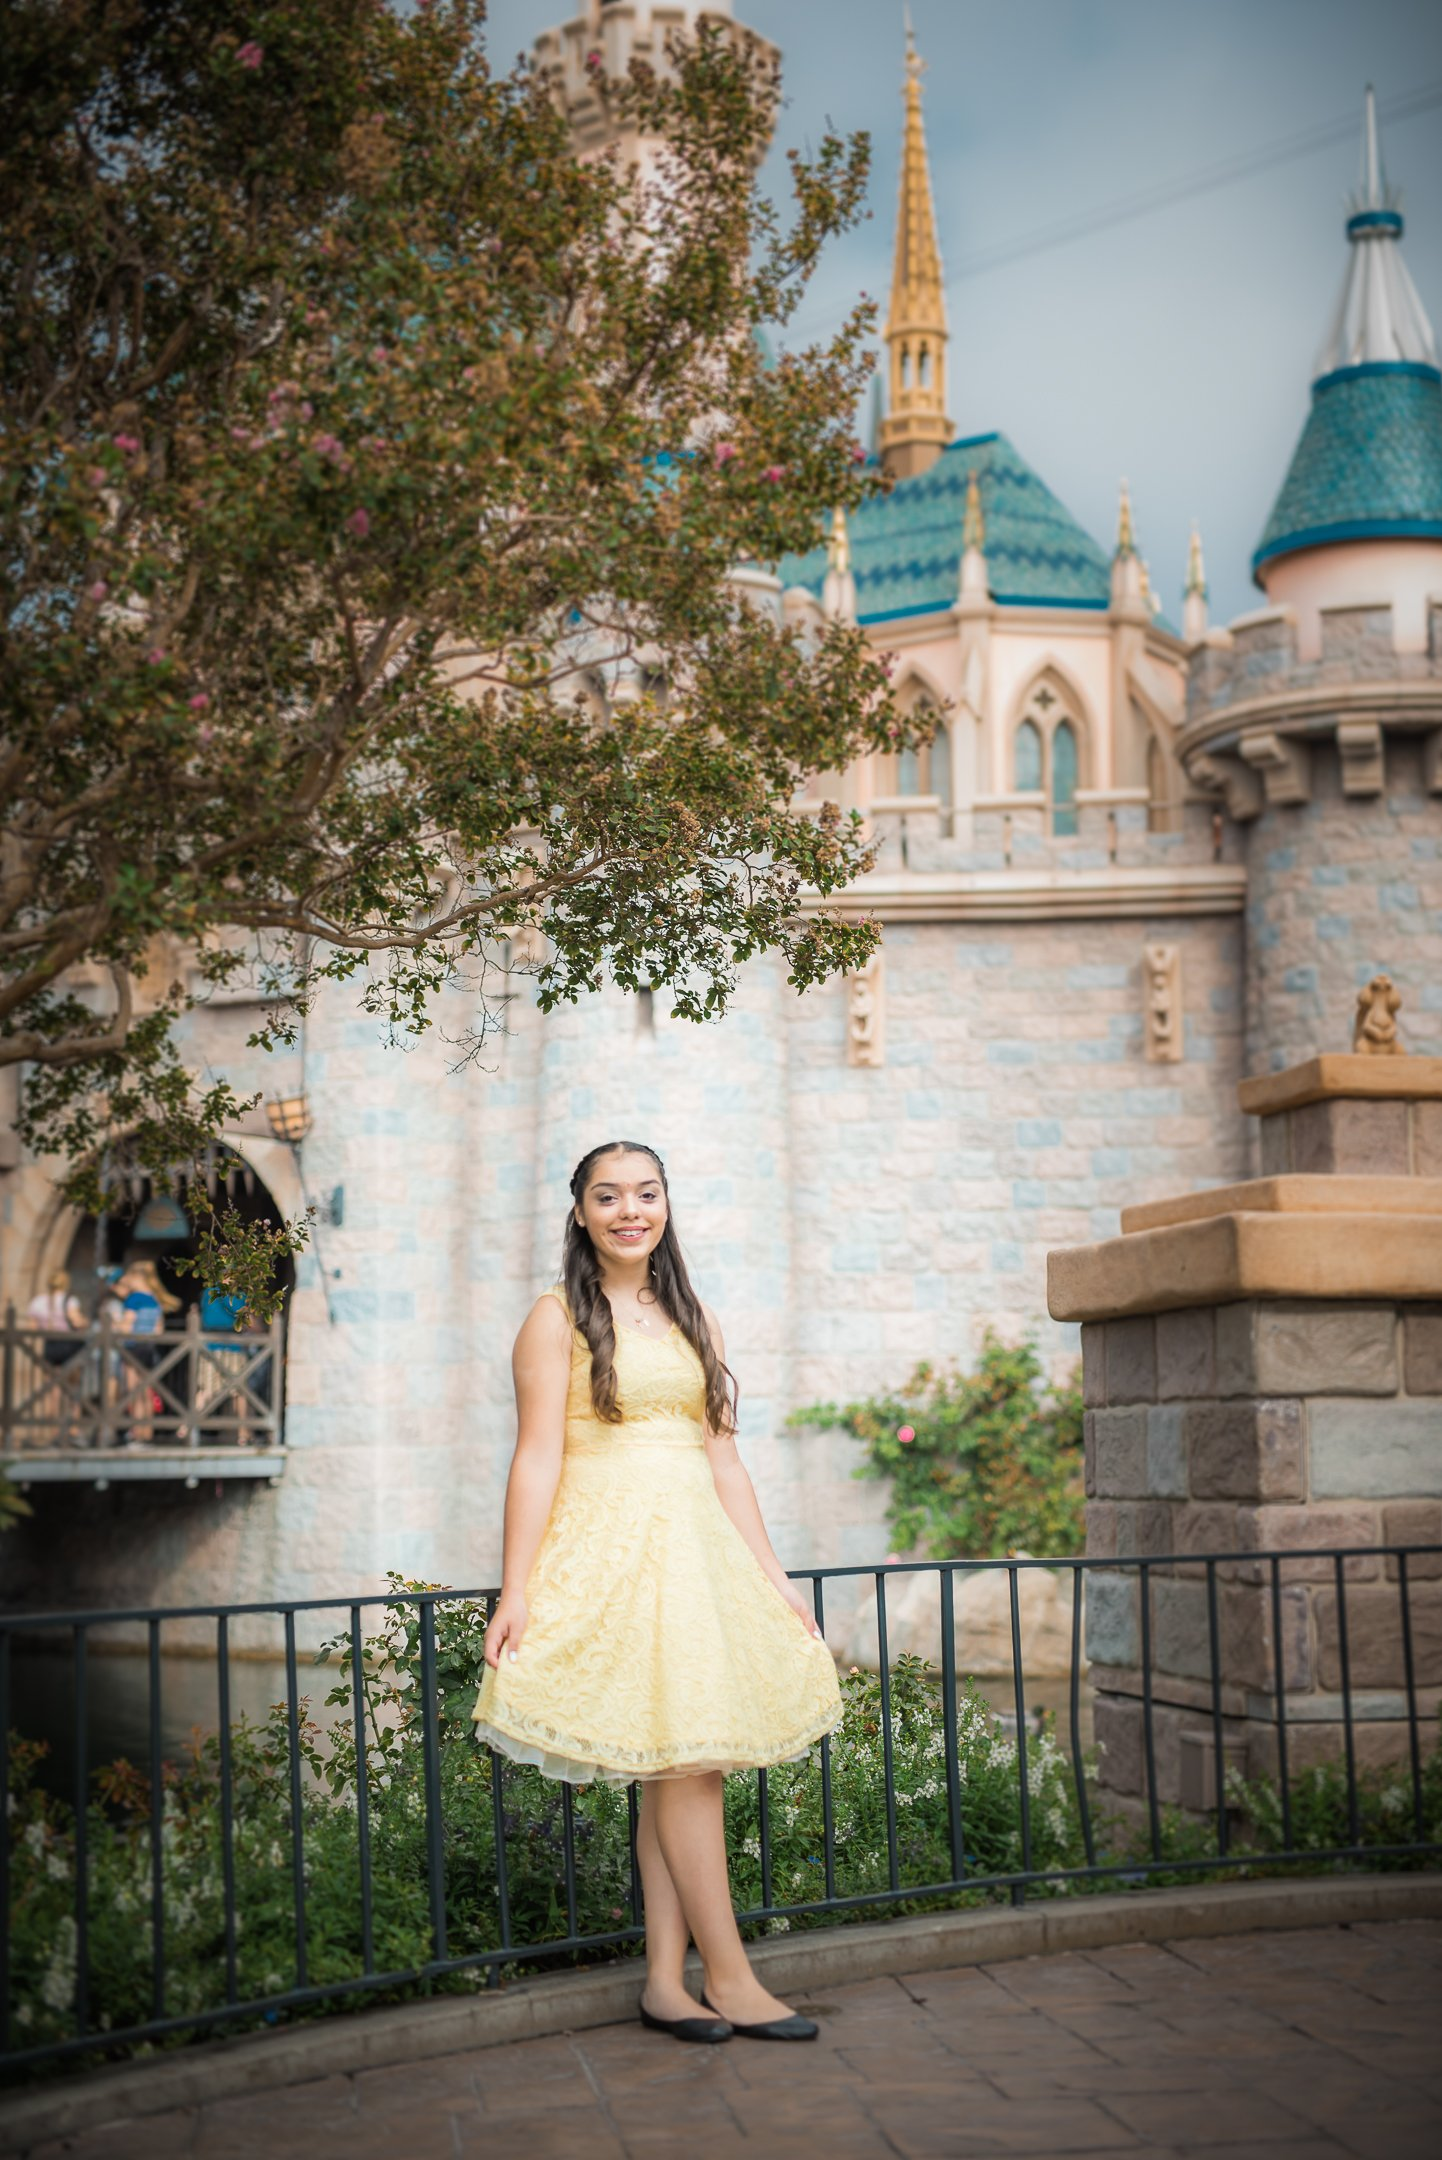 Disneyland Quinceanera photo session - In front of Sleeping Beauty's castle